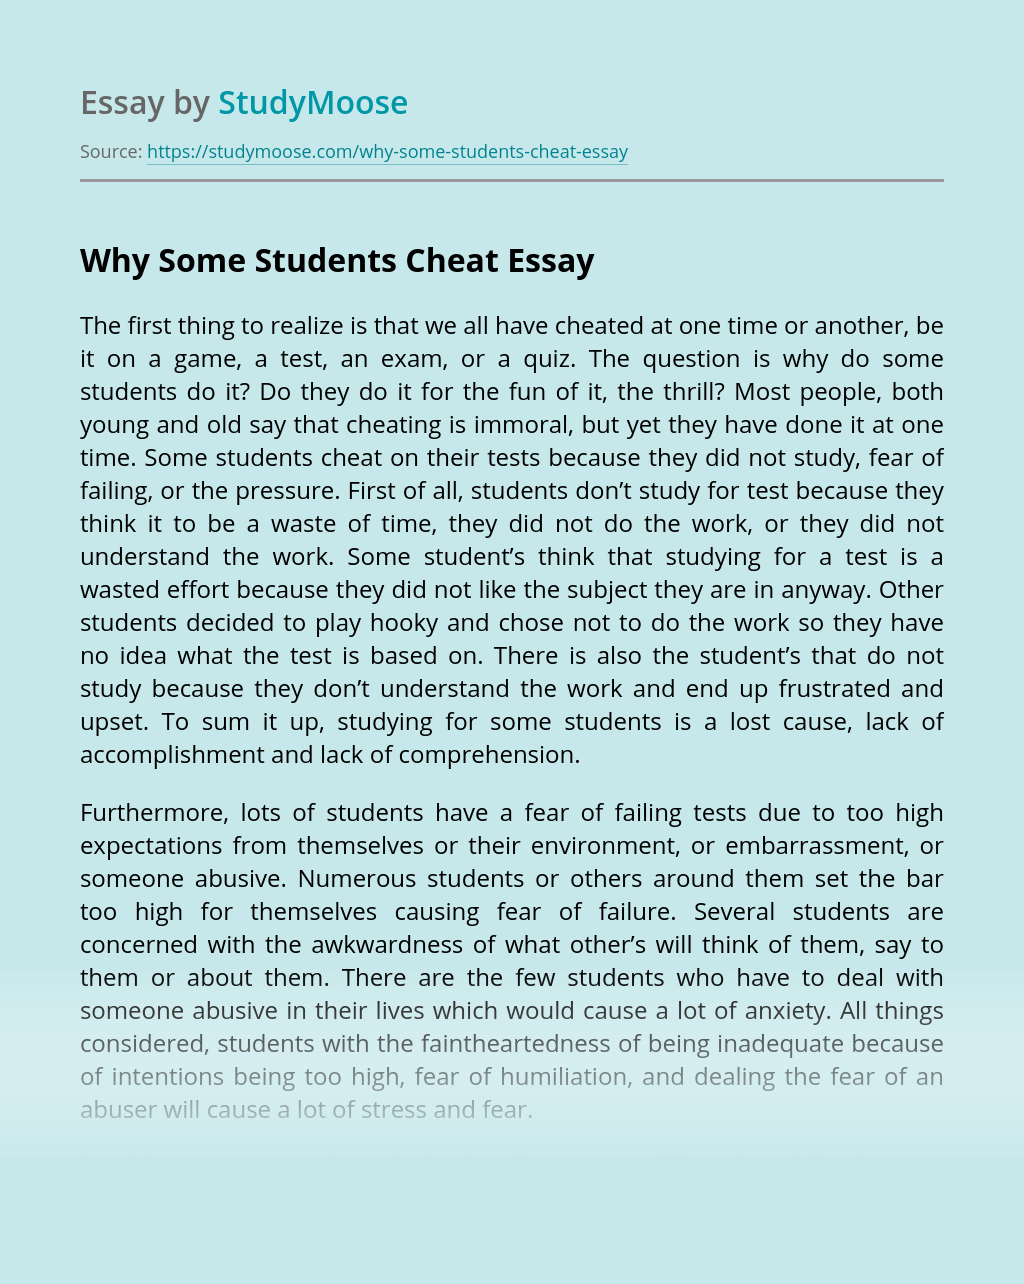 Why Some Students Cheat